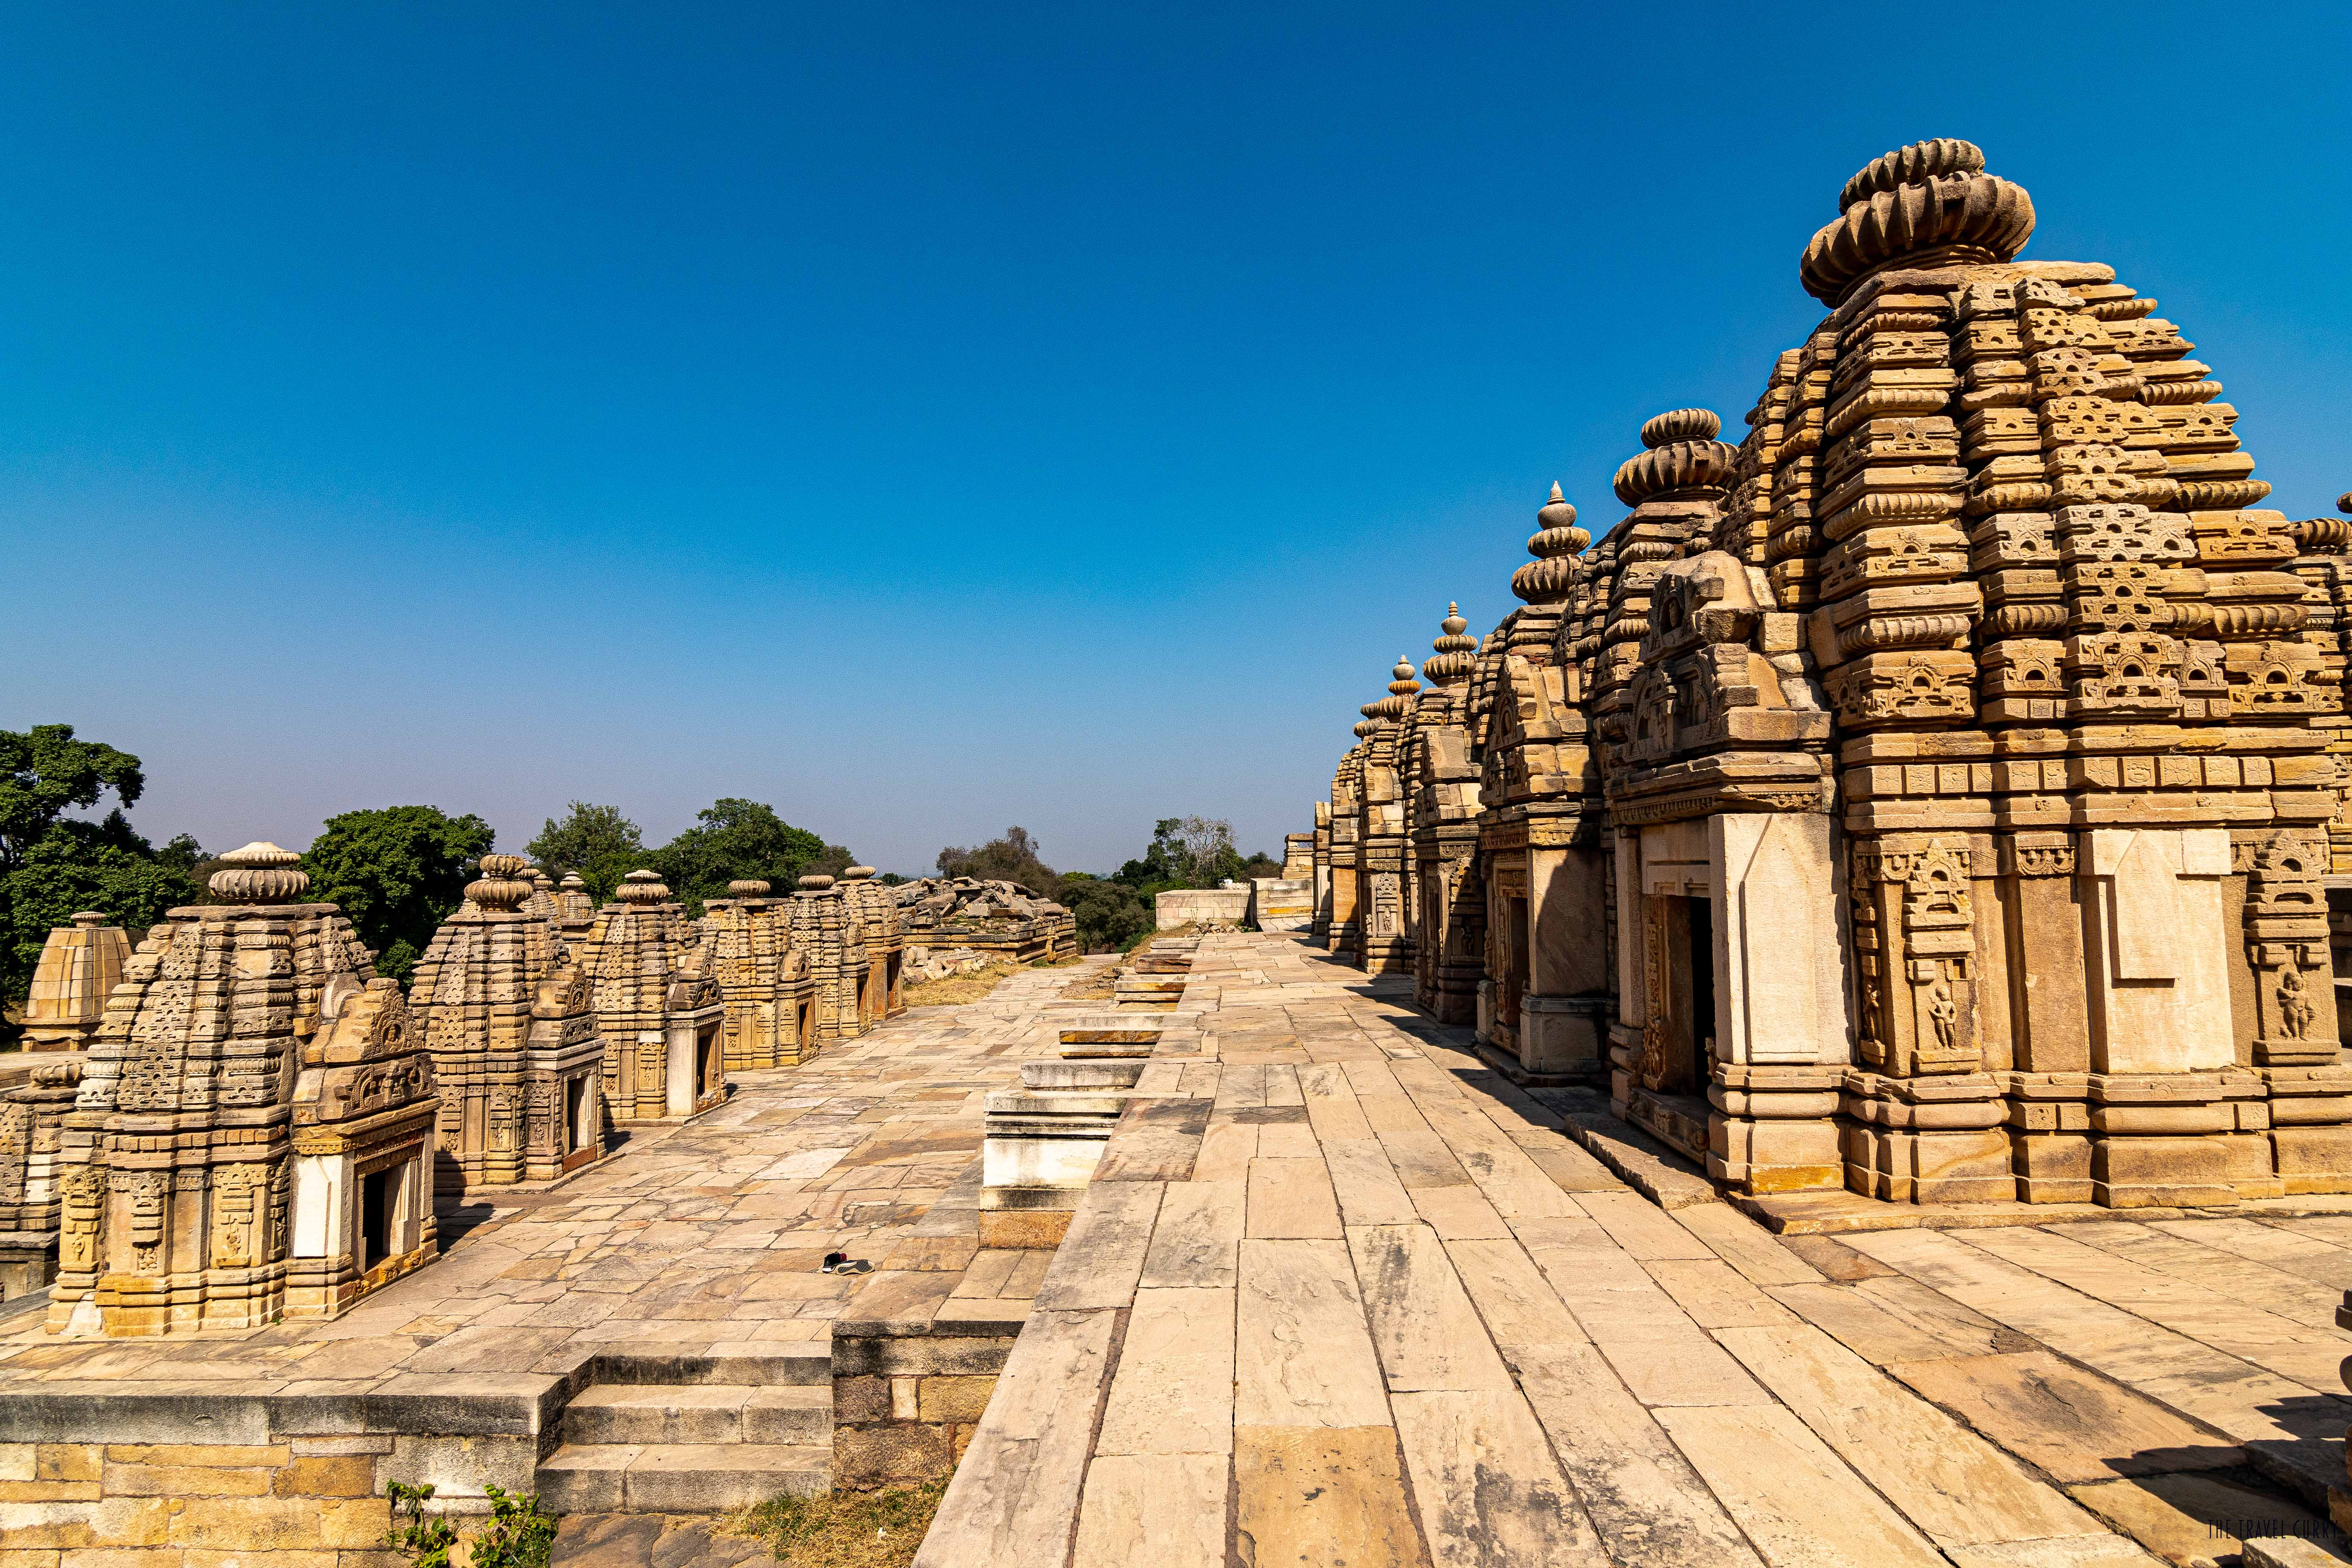 The reconstructed Bateshwar temples